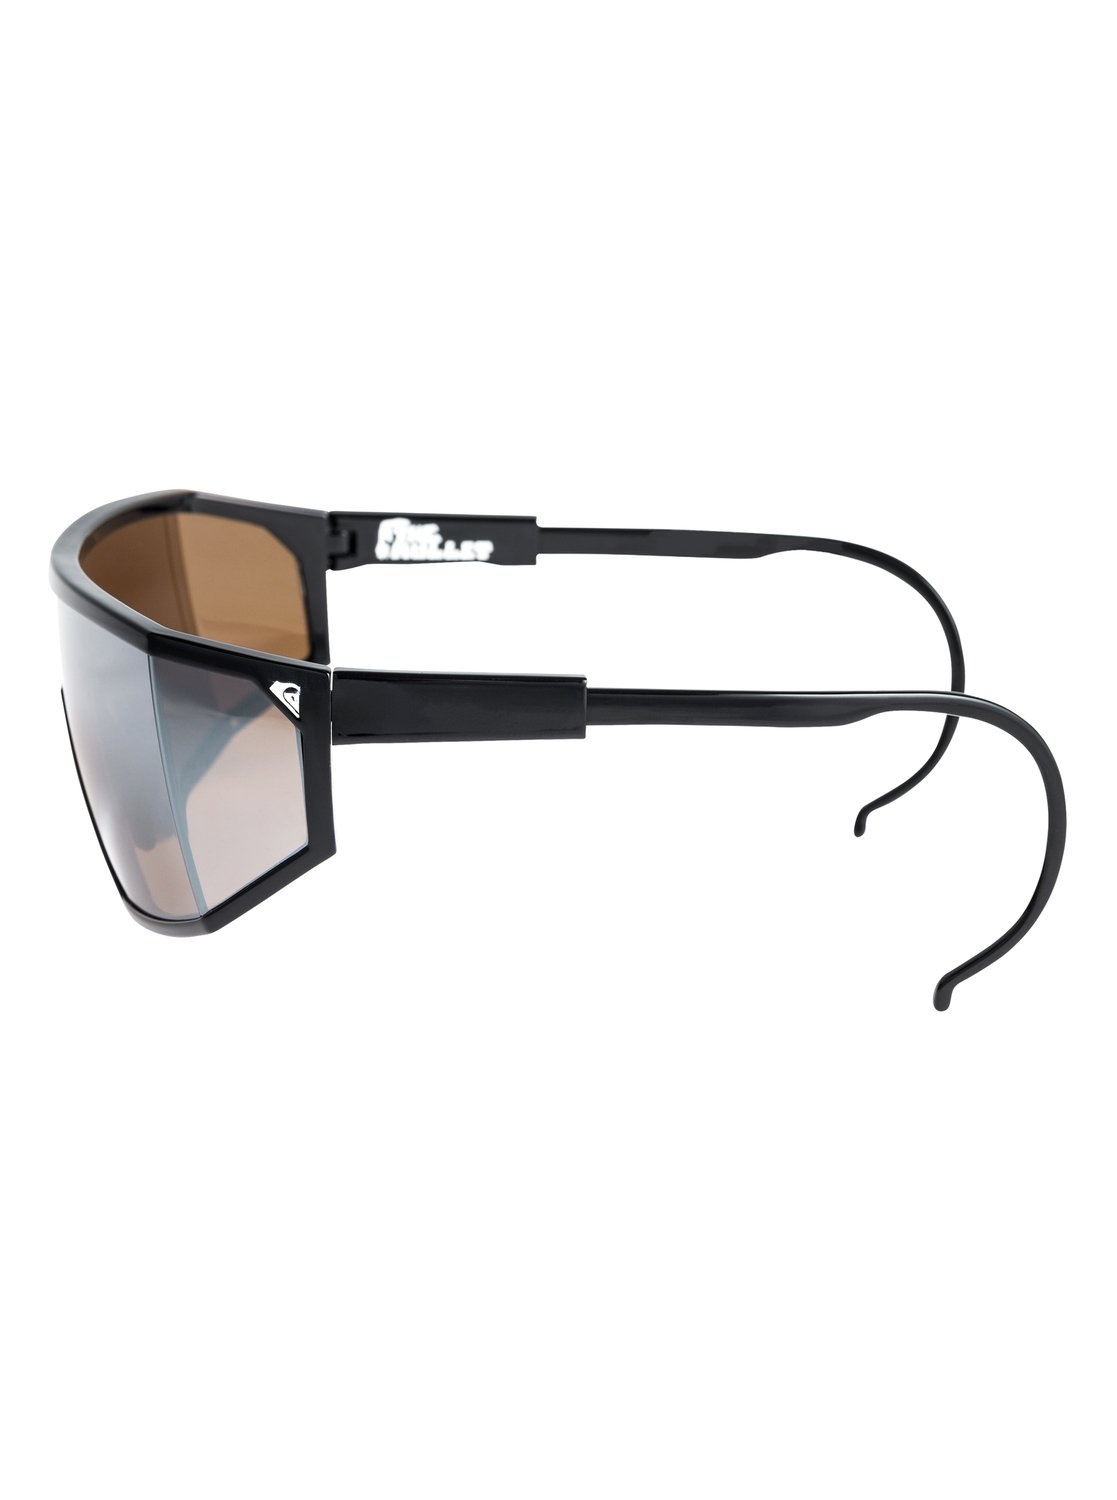 The Mullet Sunglasses